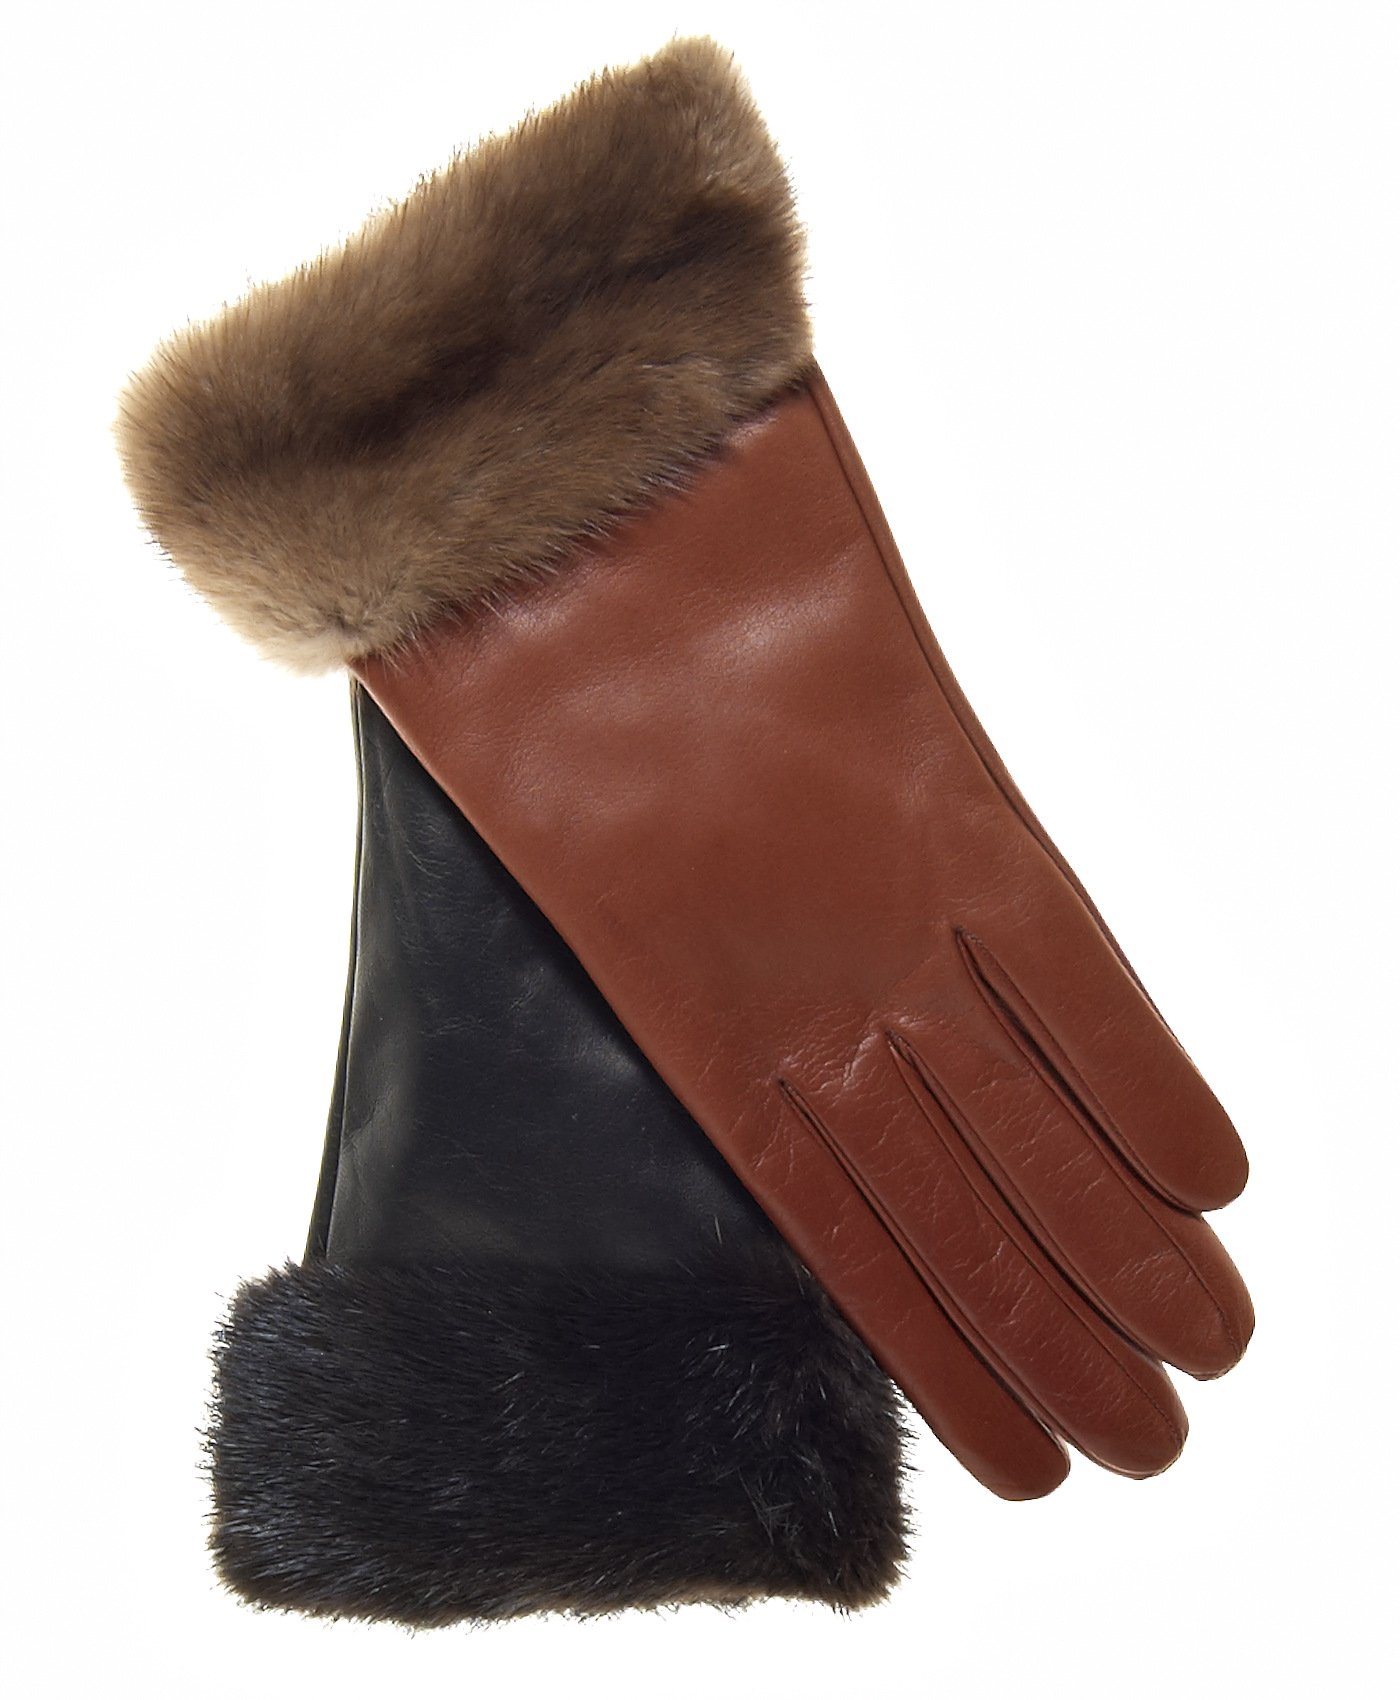 Fratelli Orsini Women's Italian Cashmere Lined Leather Gloves with Mink Cuff Size 7 Color Black